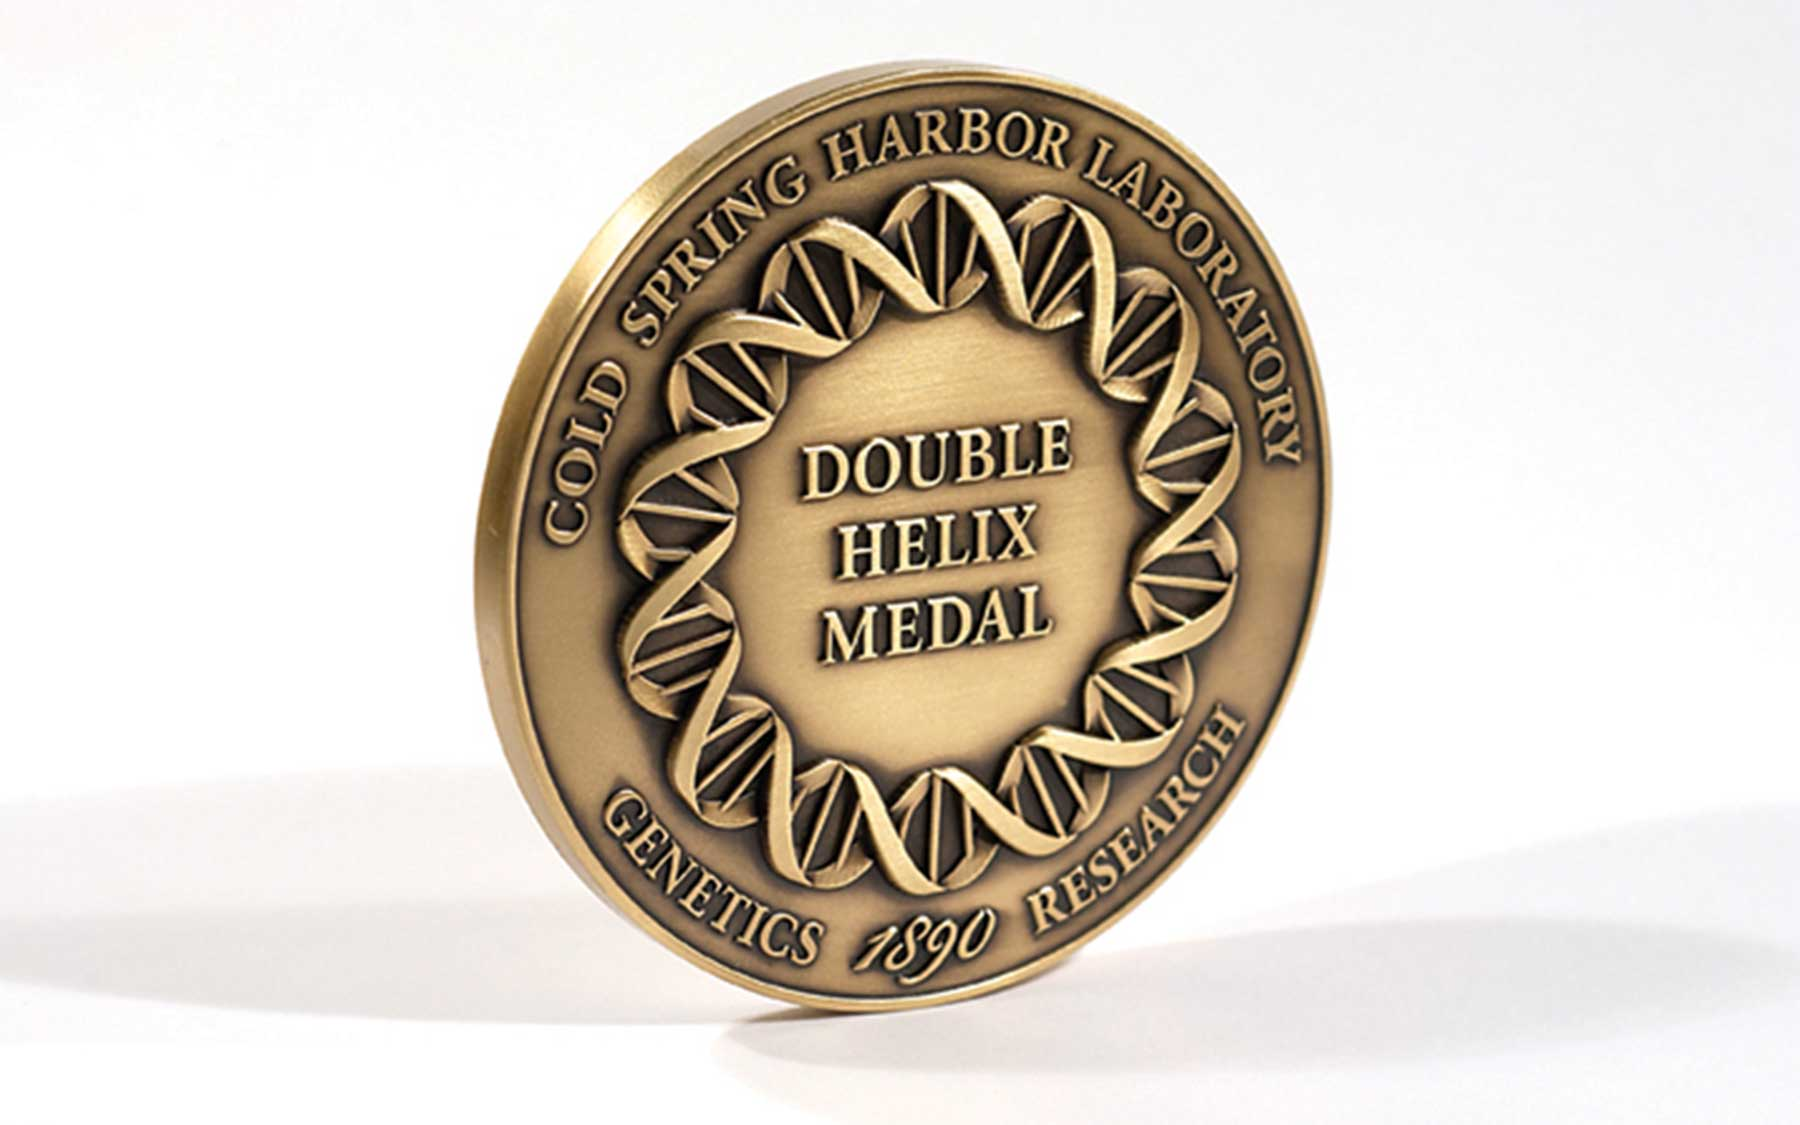 Double Helix Medal